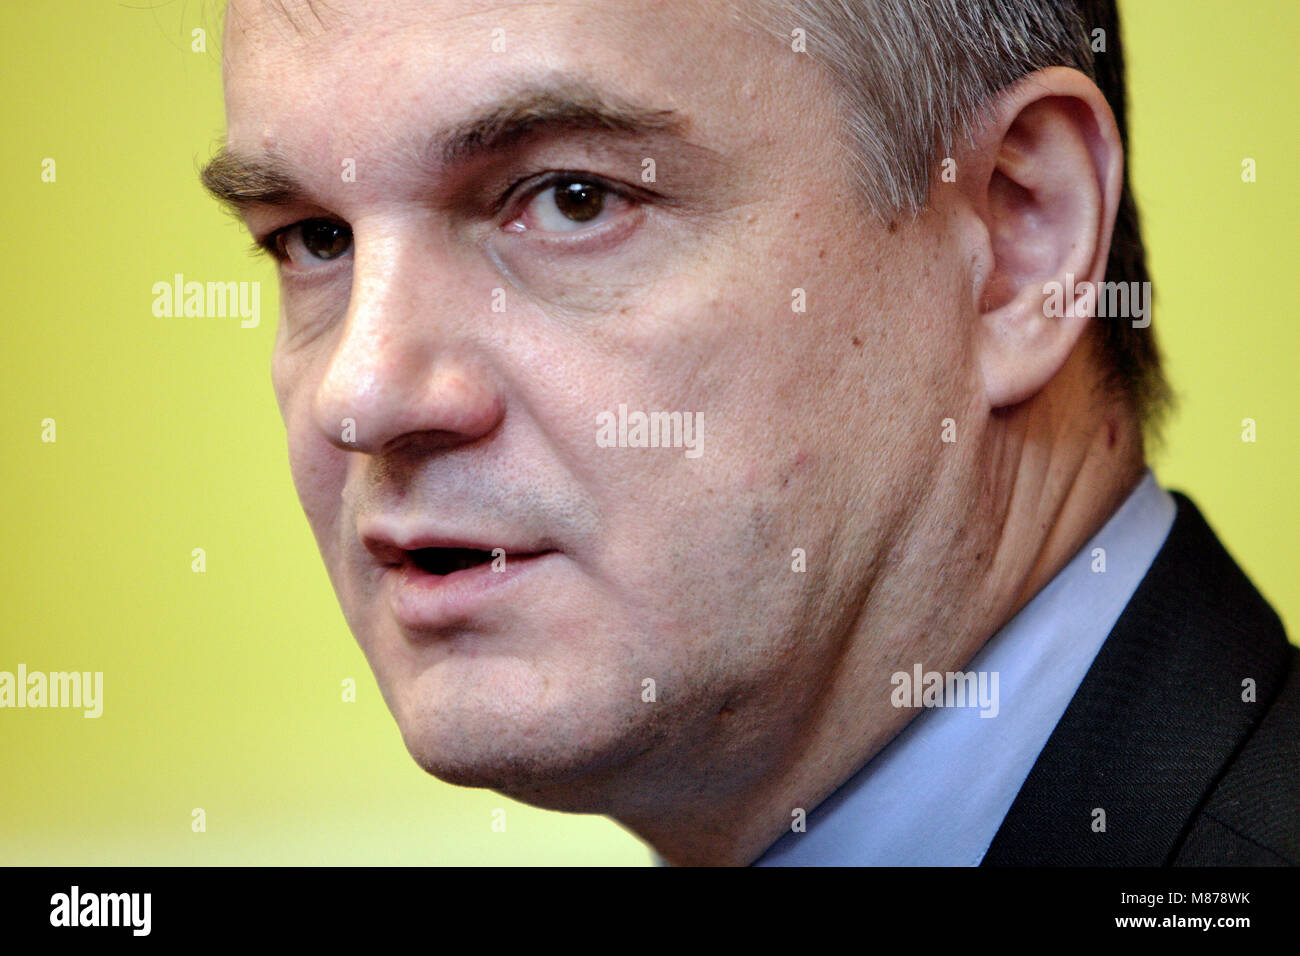 Warsaw, Masovia / Poland - 2008/08/13: Waldemar Pawlak, Deputy Prime Minister of Poland and leader of Polish Peasants' - Stock Image